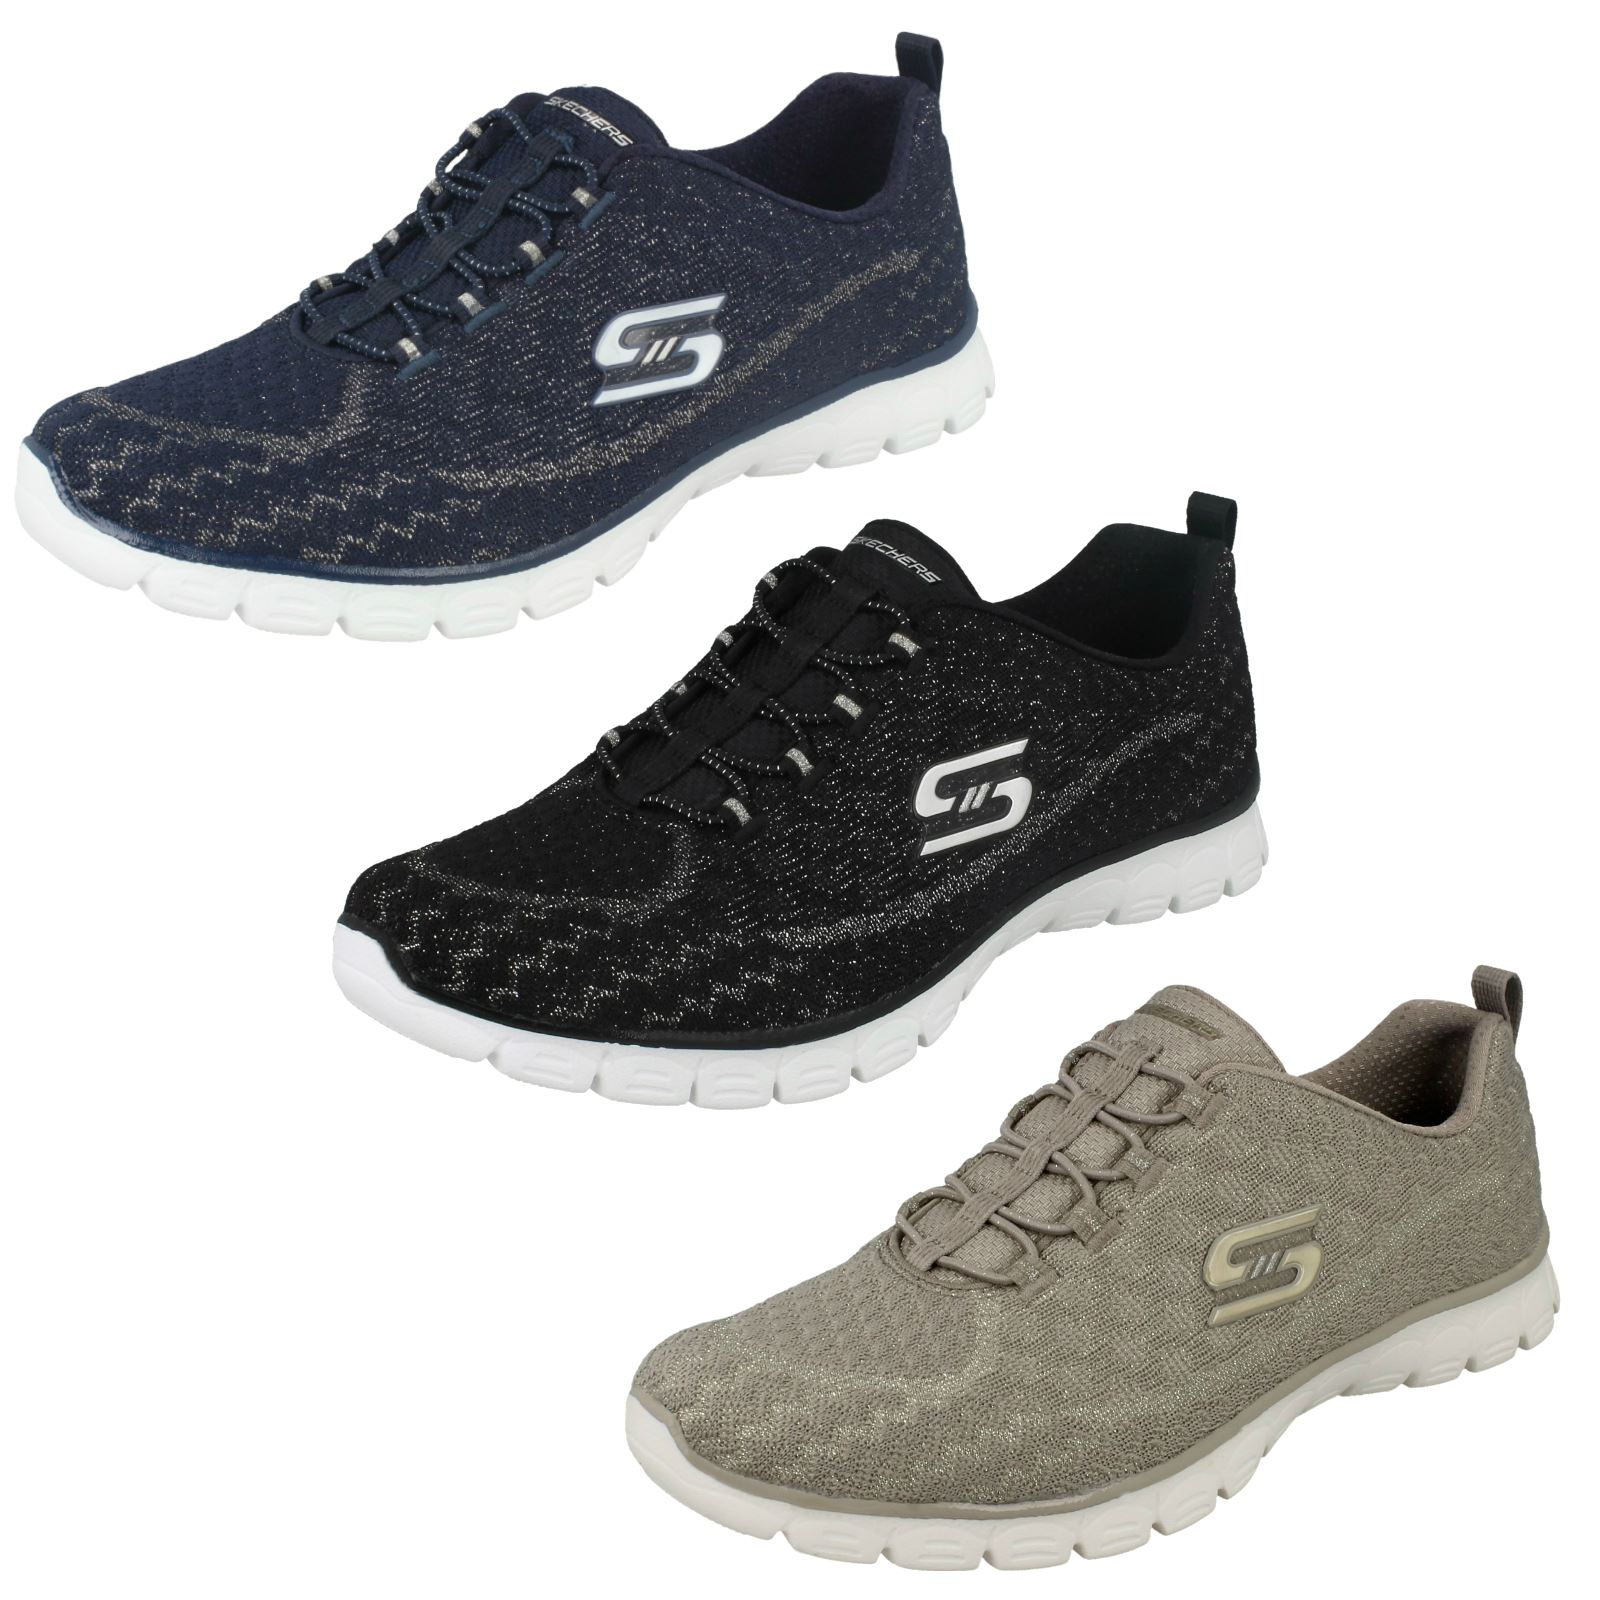 sketchers with glitter off 54% - www